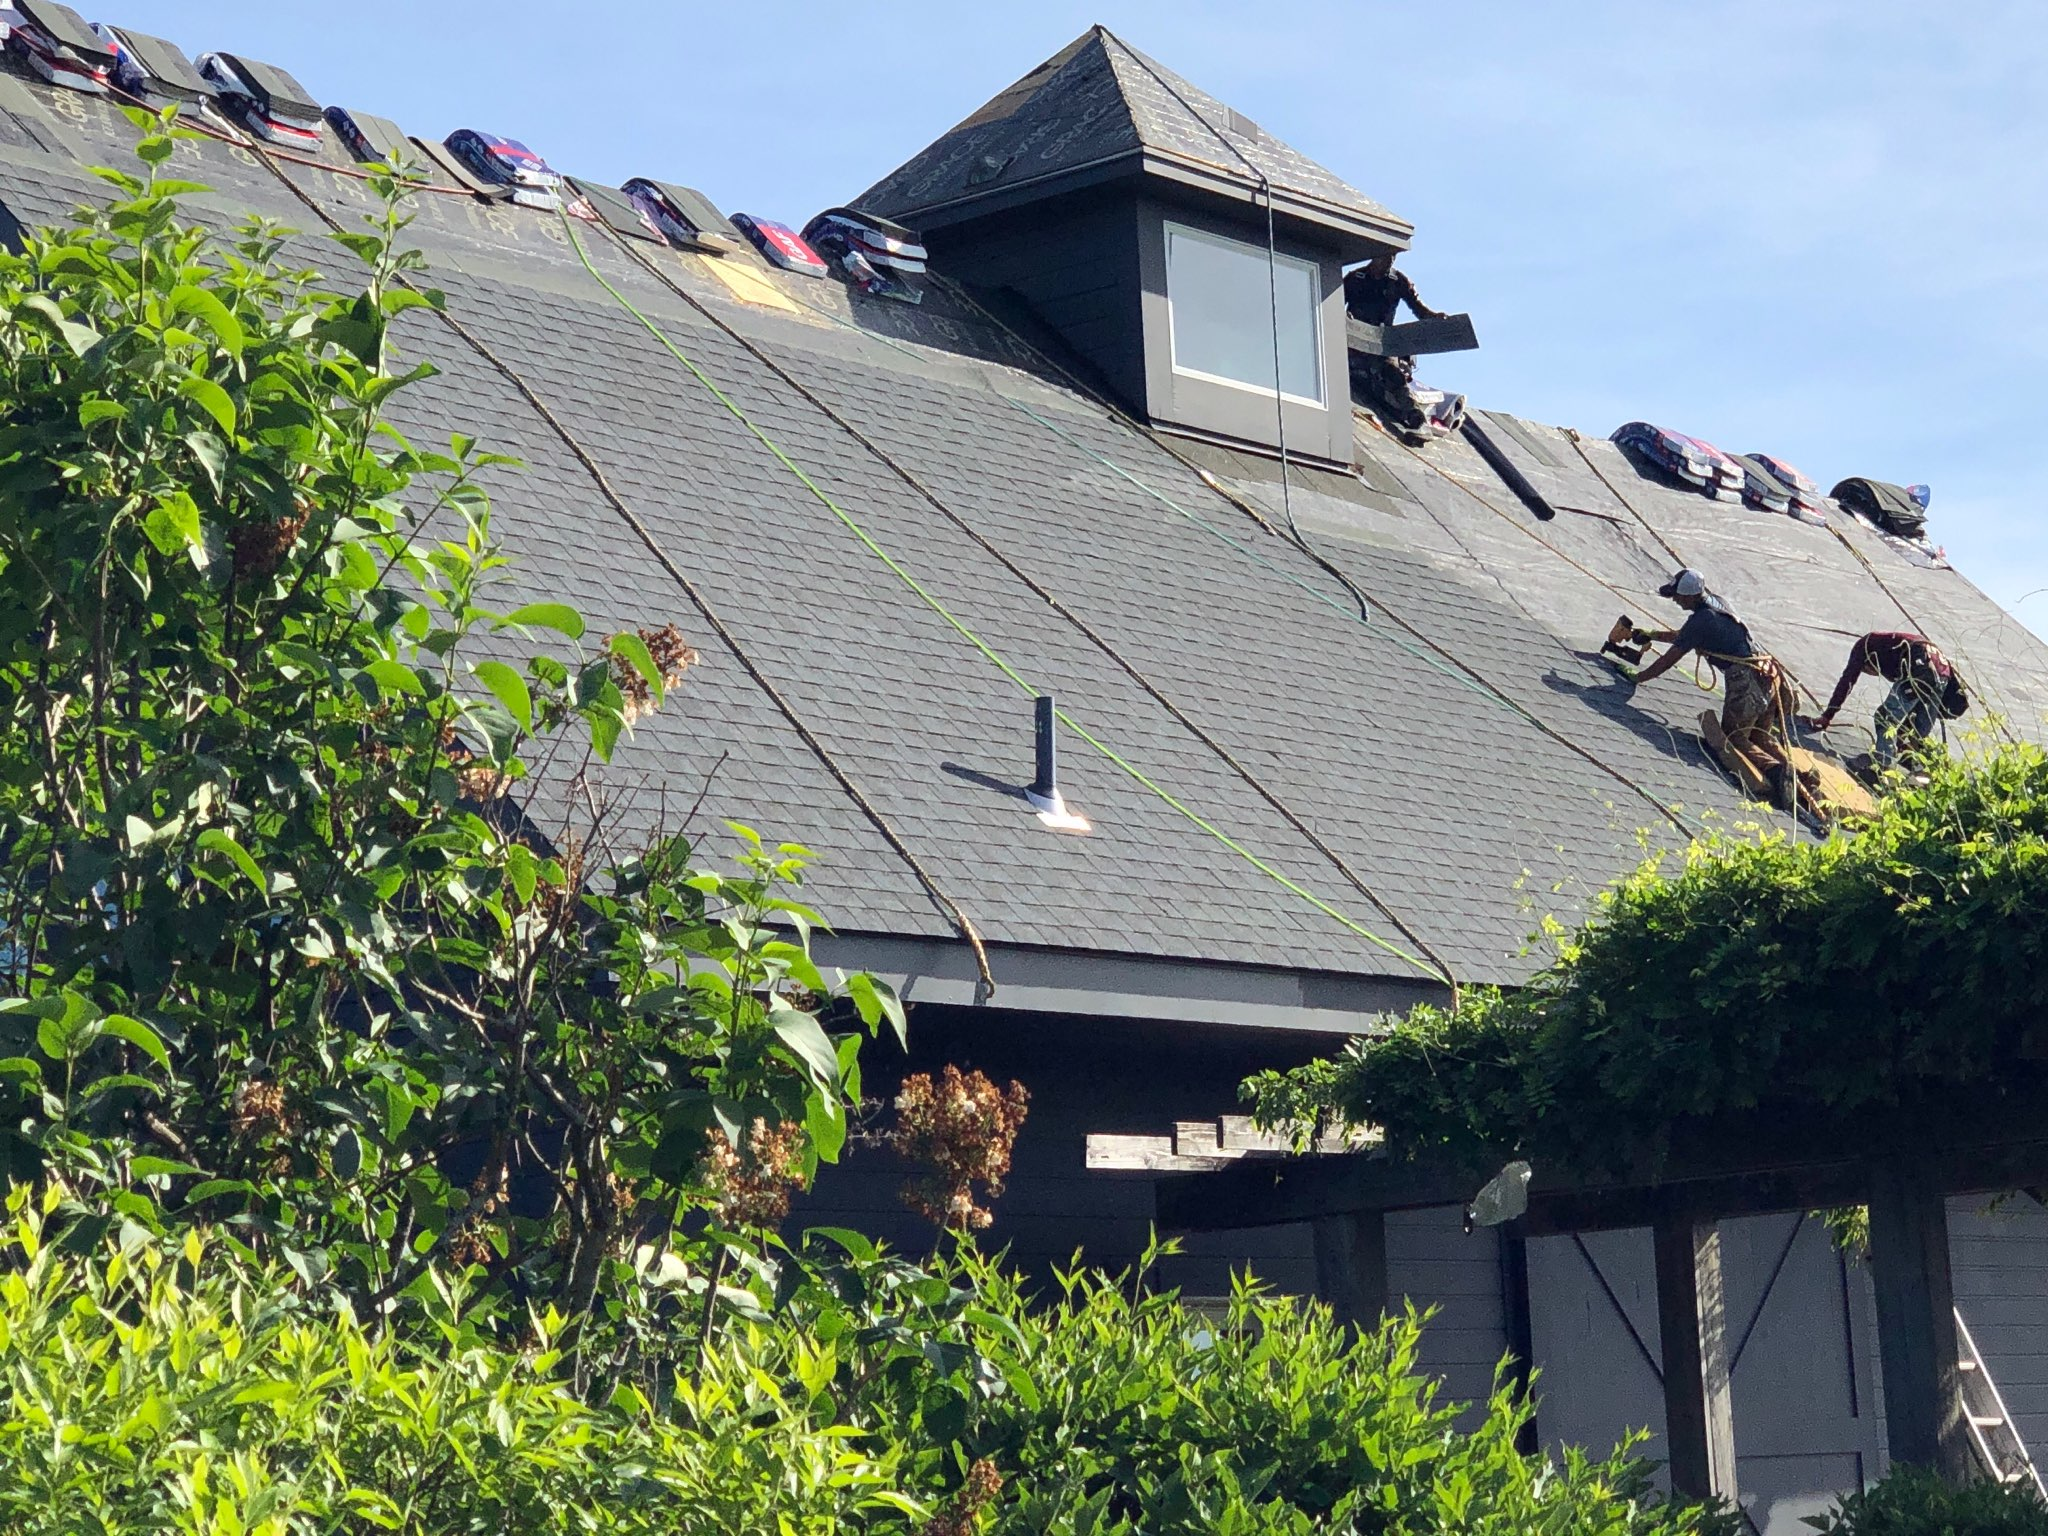 Roofing Services Repair Castleton On Hudson Albany Ny Phelps Brothers Roofing